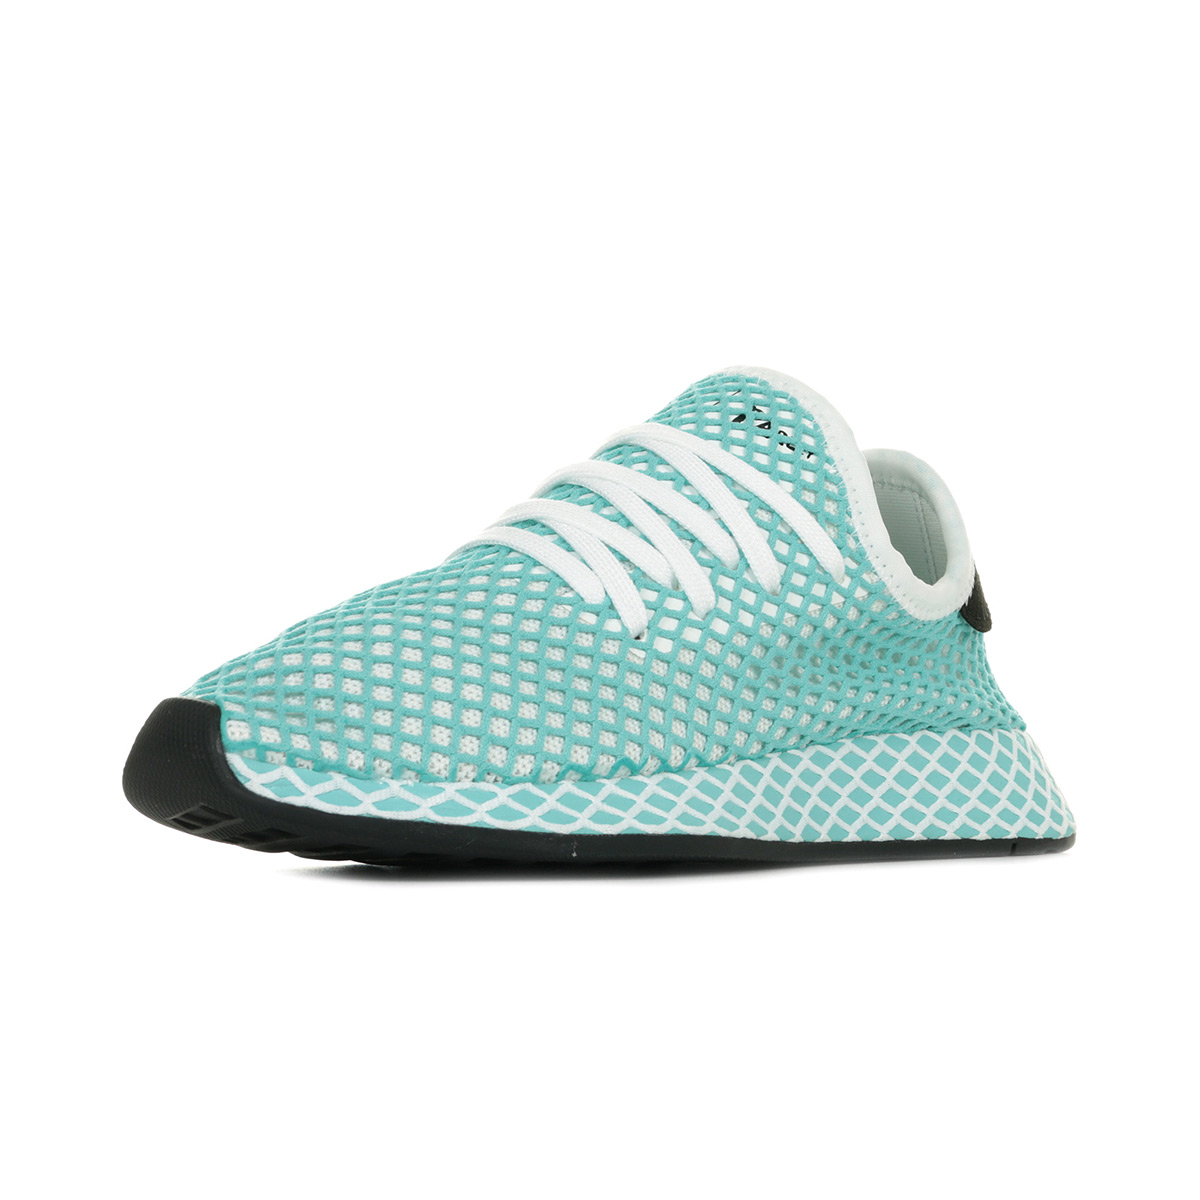 adidas Parley Deerupt Runner Wn's CQ2908, Baskets mode femme